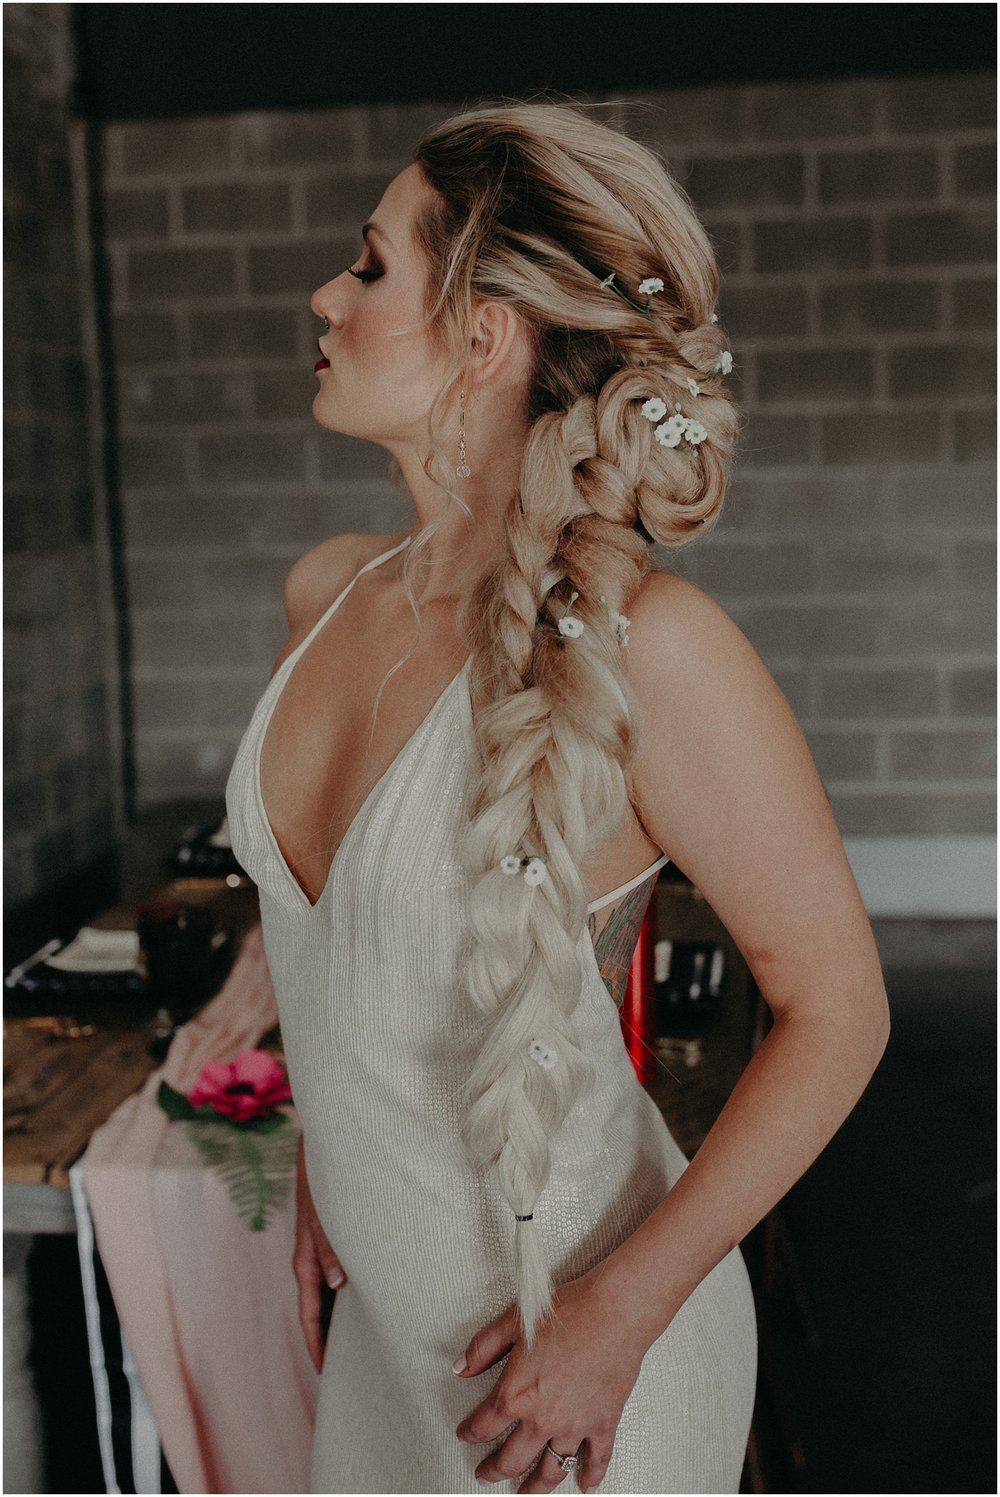 styled shoot-bridal portraits-portraits-bride-rock and roll-industrial-urban-wedding-inspiration-nj-new jersey-nyc-new york city-art-diy wedding_0048.jpg